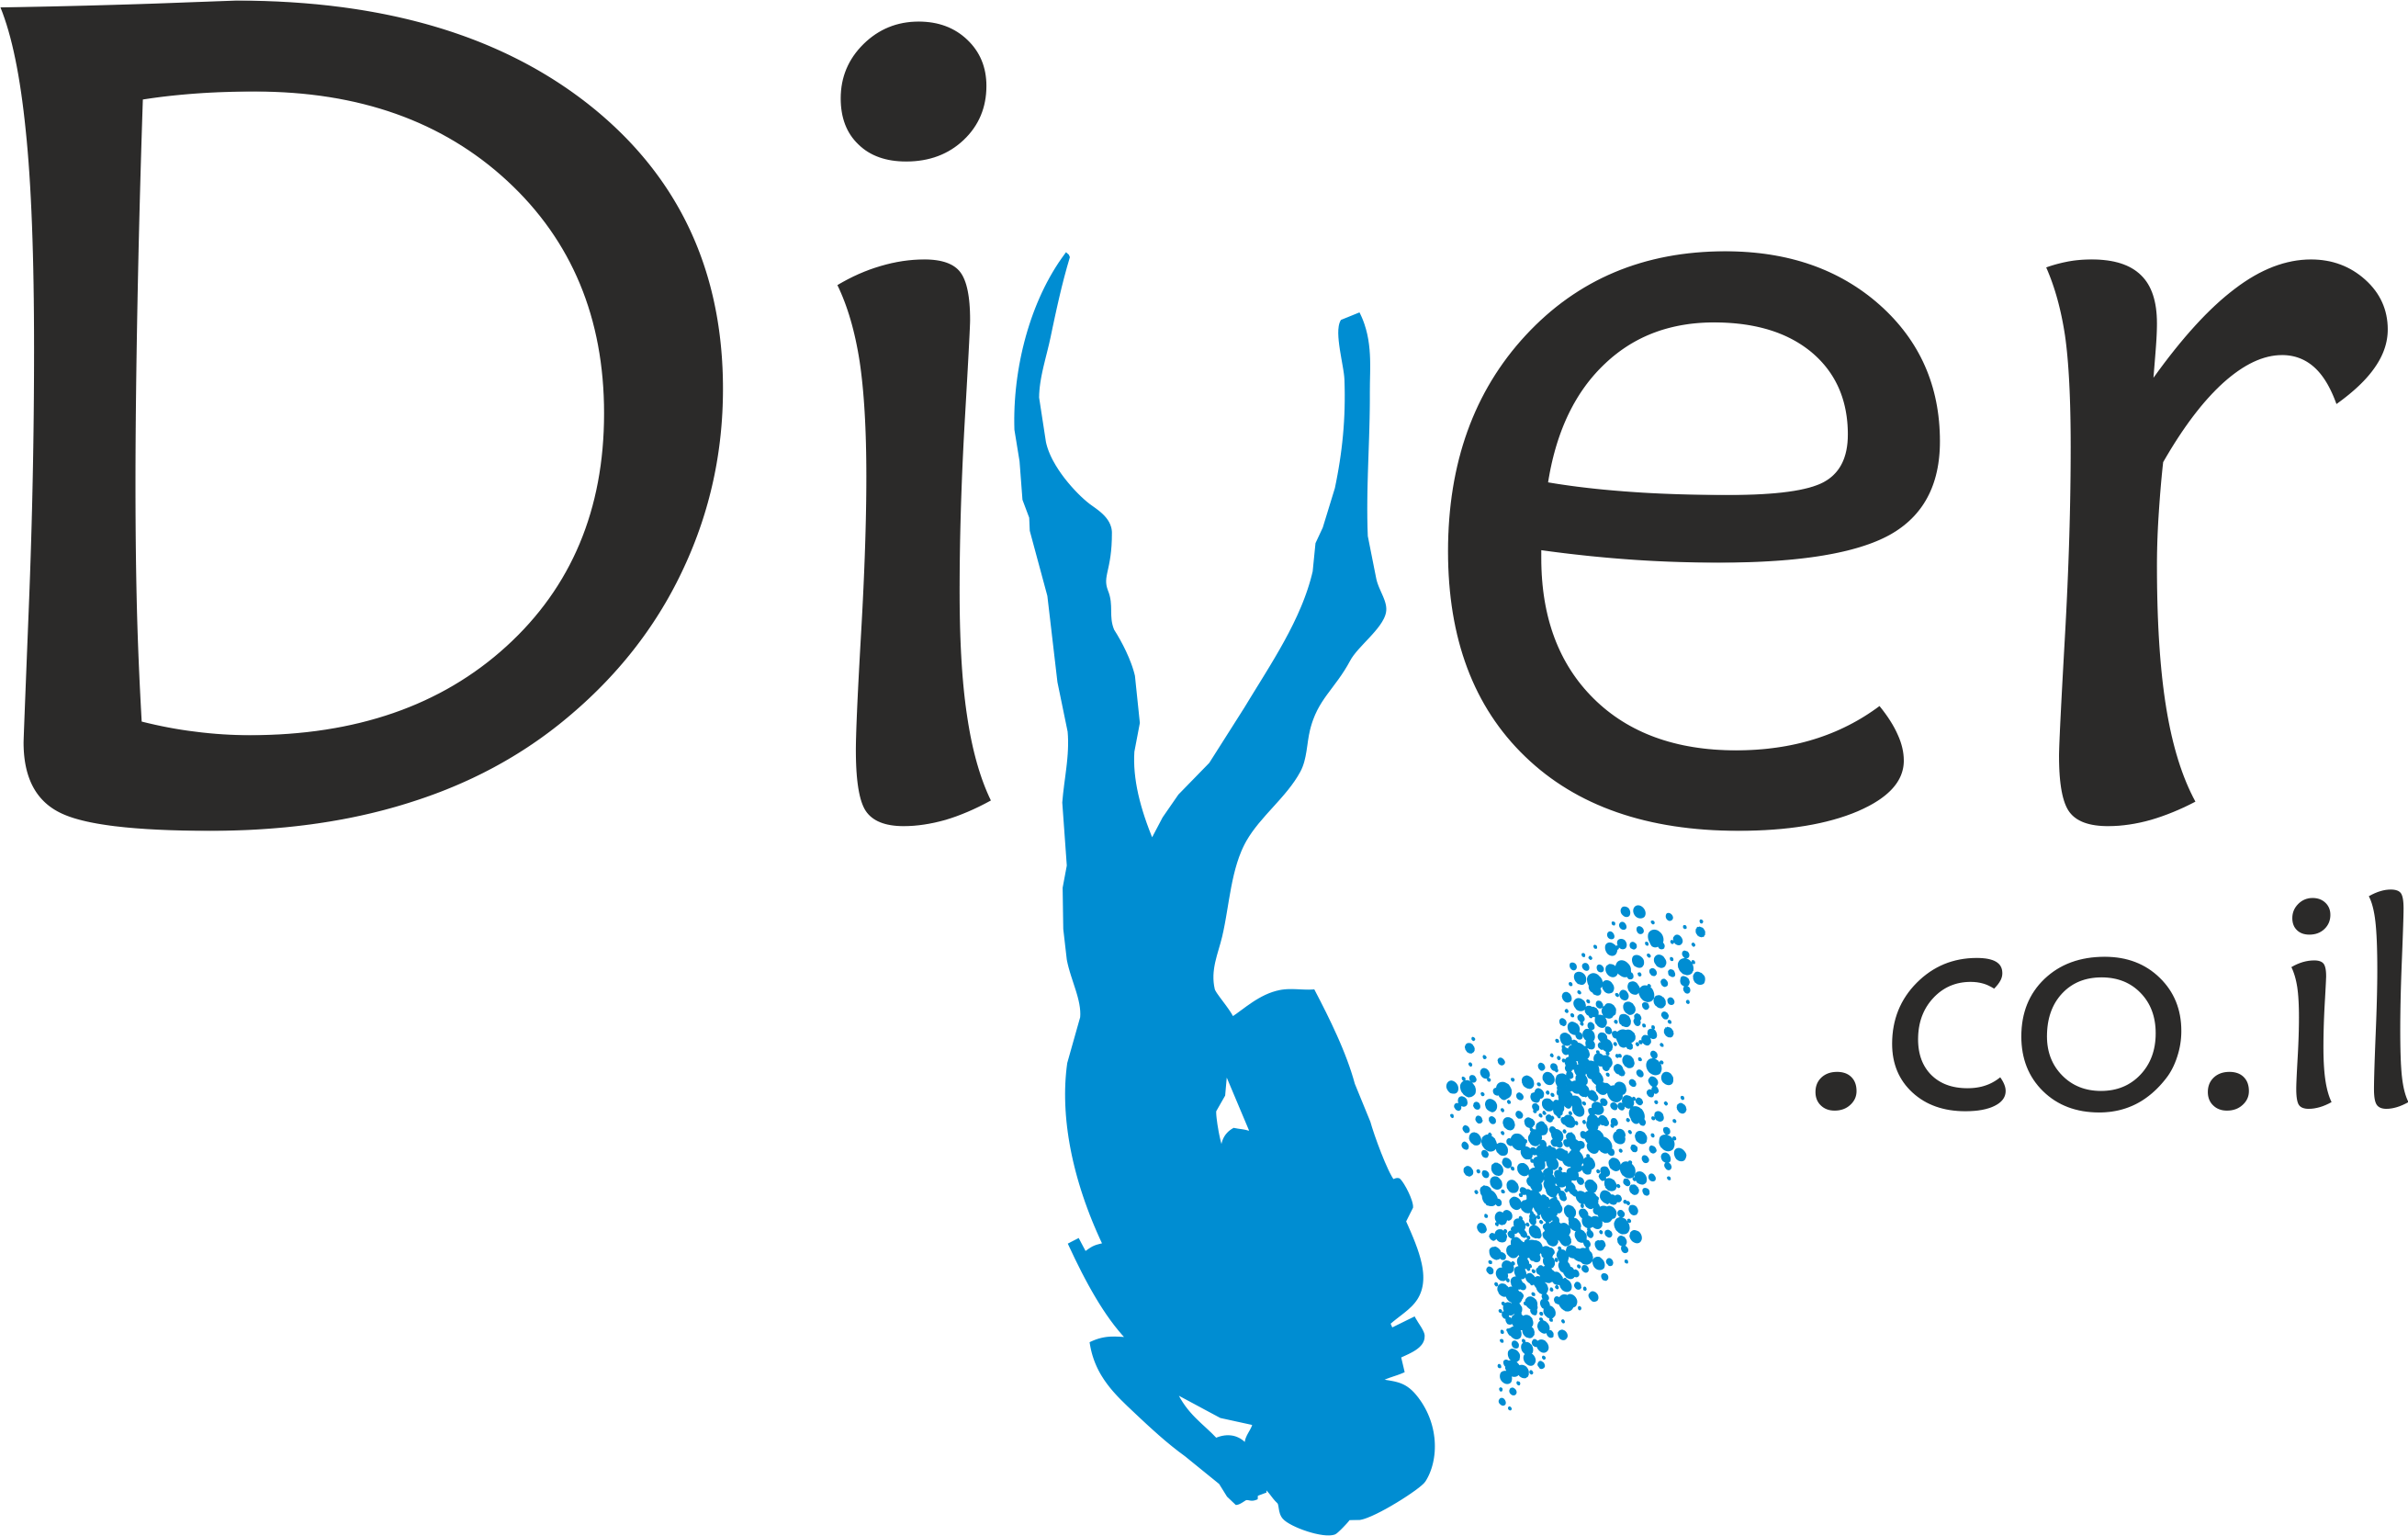 Diver.co.il (Hebrew)